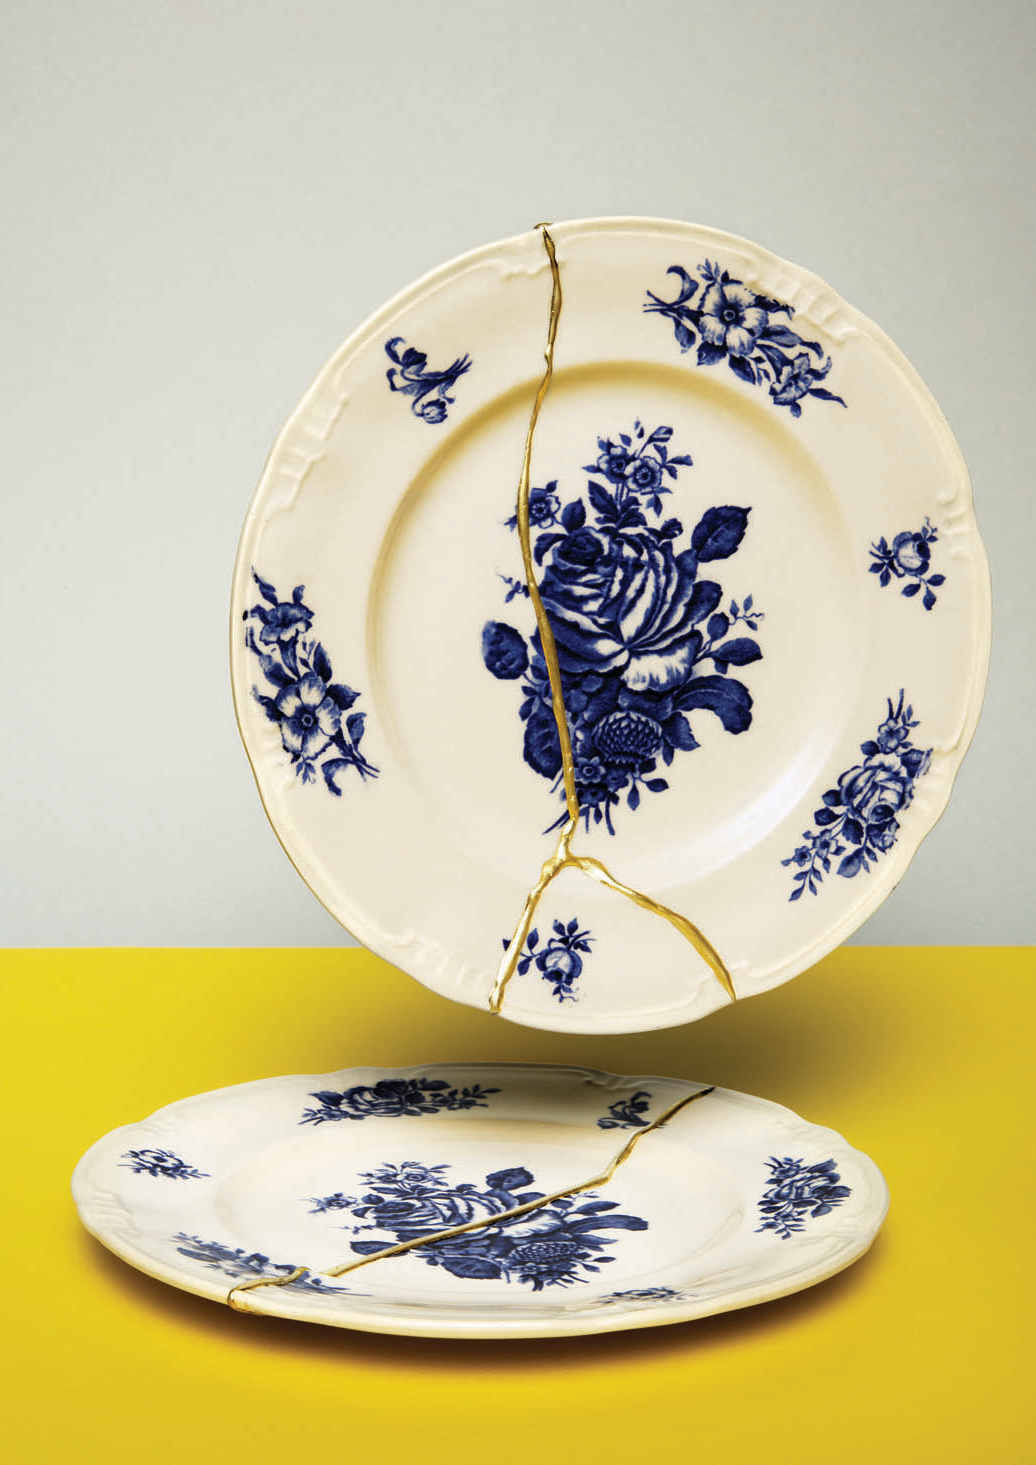 Kintsugi Bison Kintsugi Lotte Dekker Gluing Porcelain Based On Old